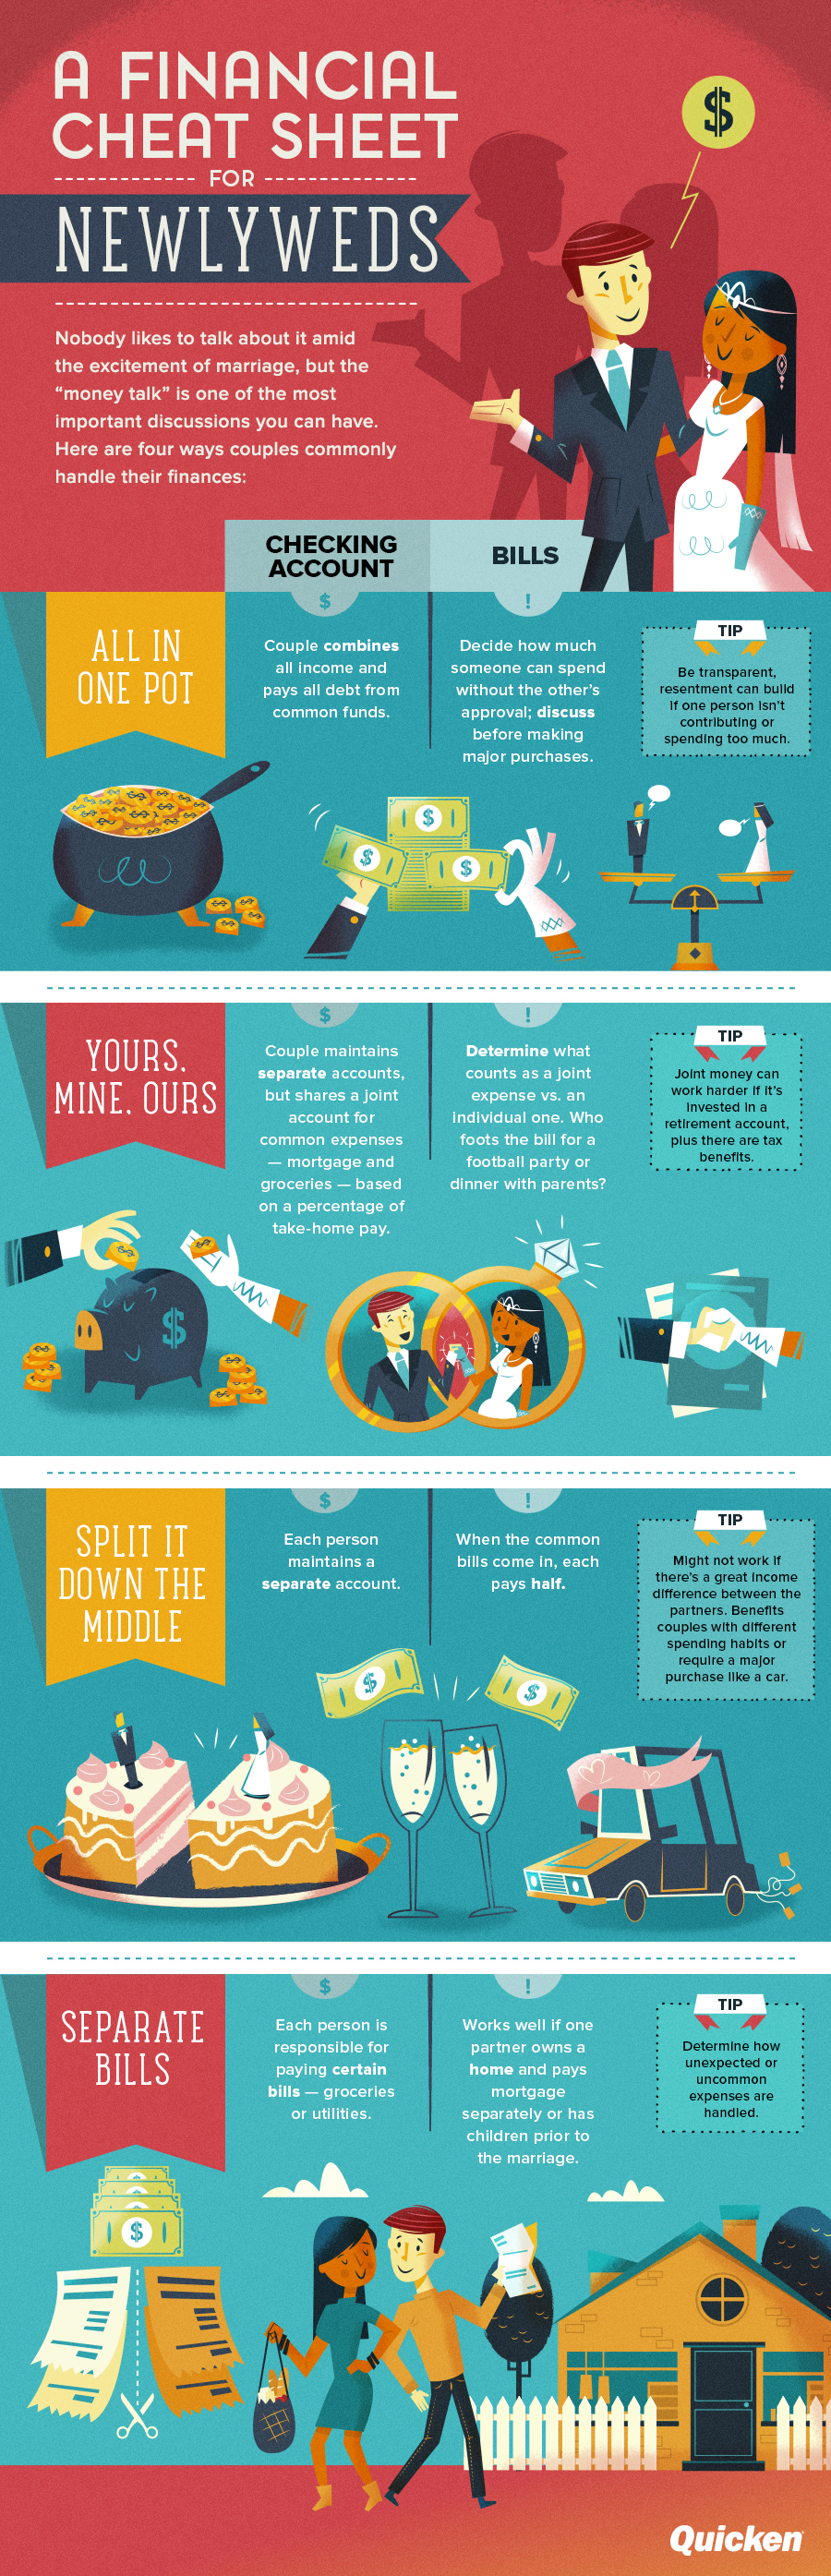 Have the Money Talk: A Financial Cheat Sheet For Newlyweds